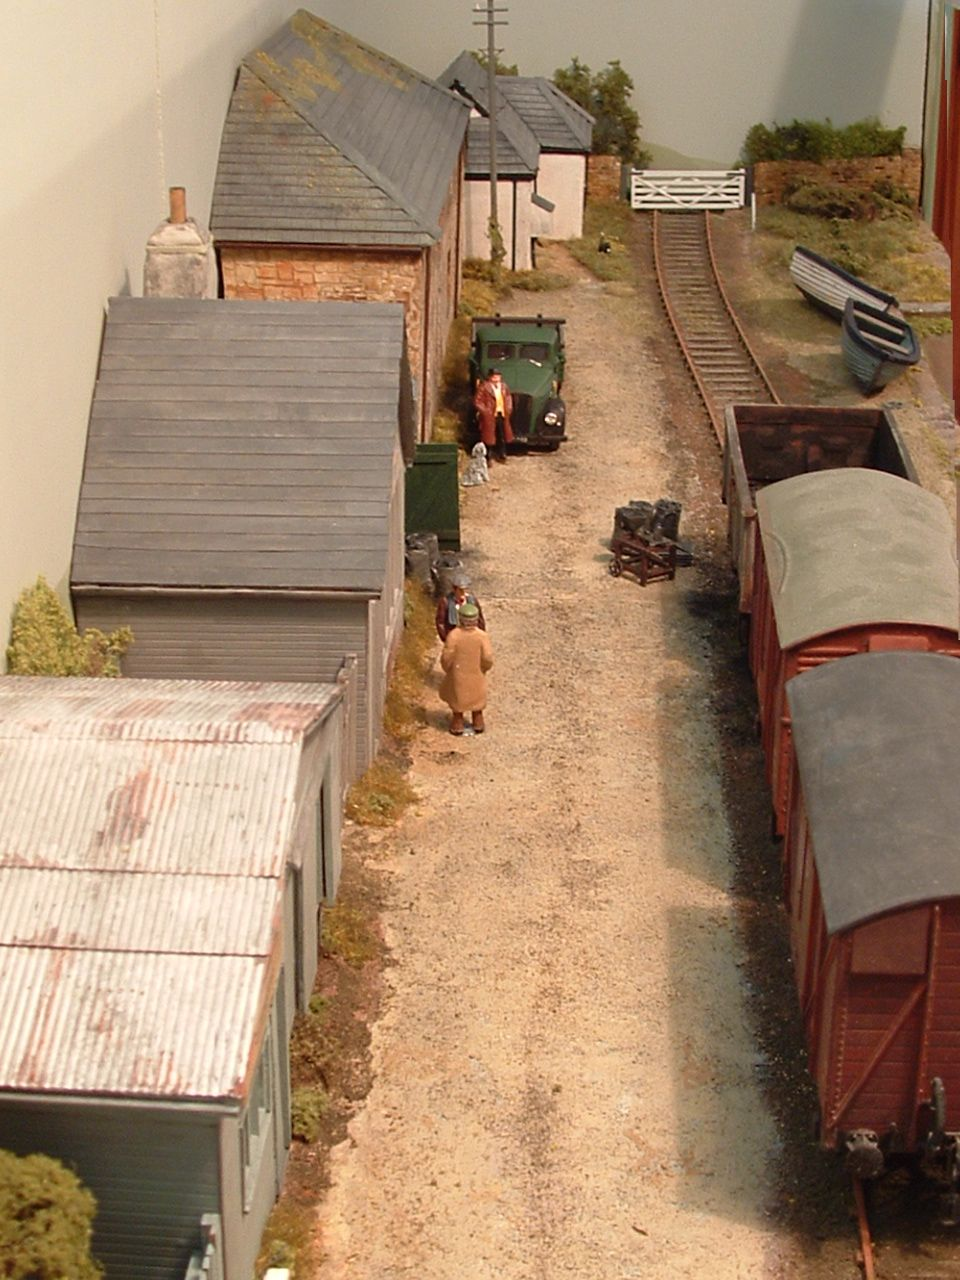 Osney Town Ii And Other 0 Gauge Micro Layouts Layout Topics Model Trains Model Train Scenery Model Train Layouts